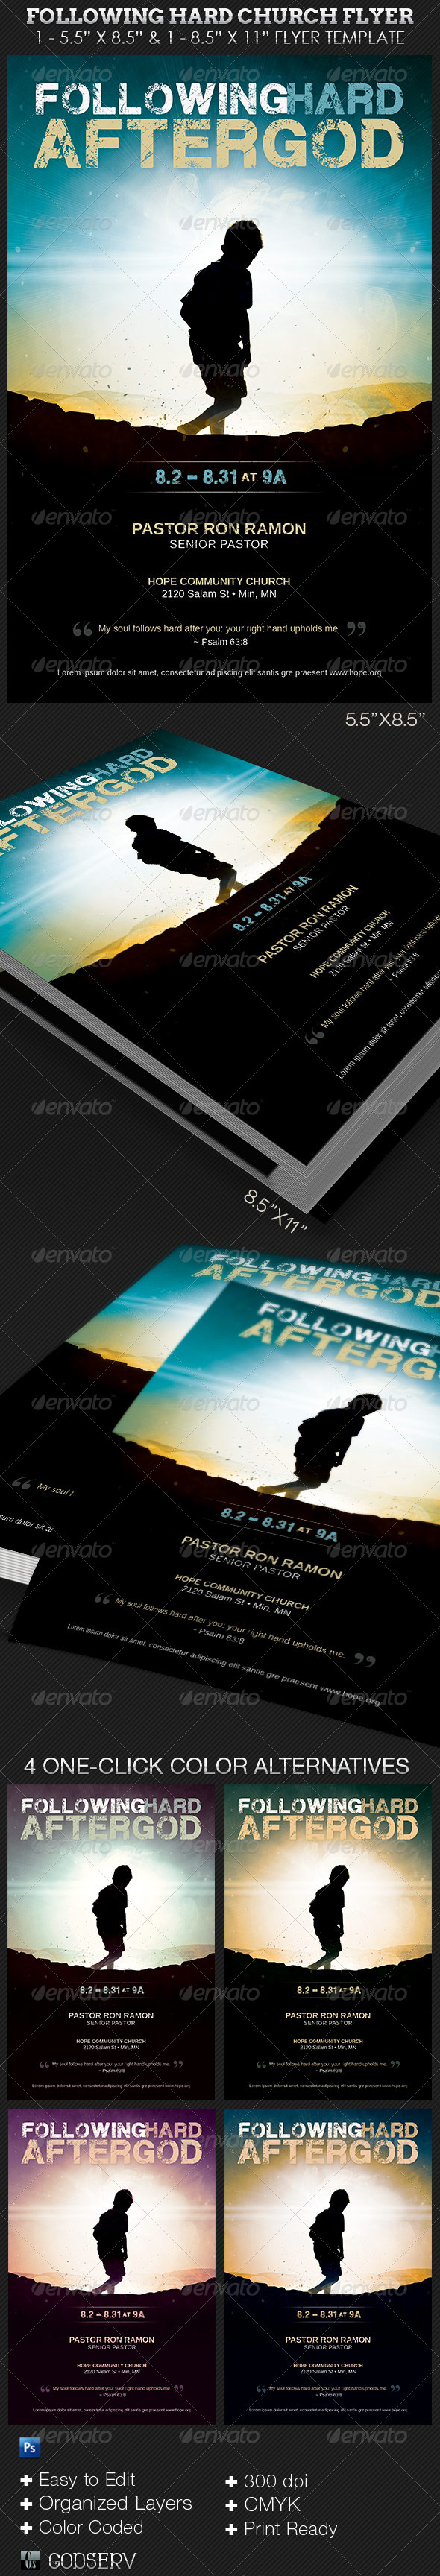 GraphicRiver Following Hard Church Flyer Template 6735539